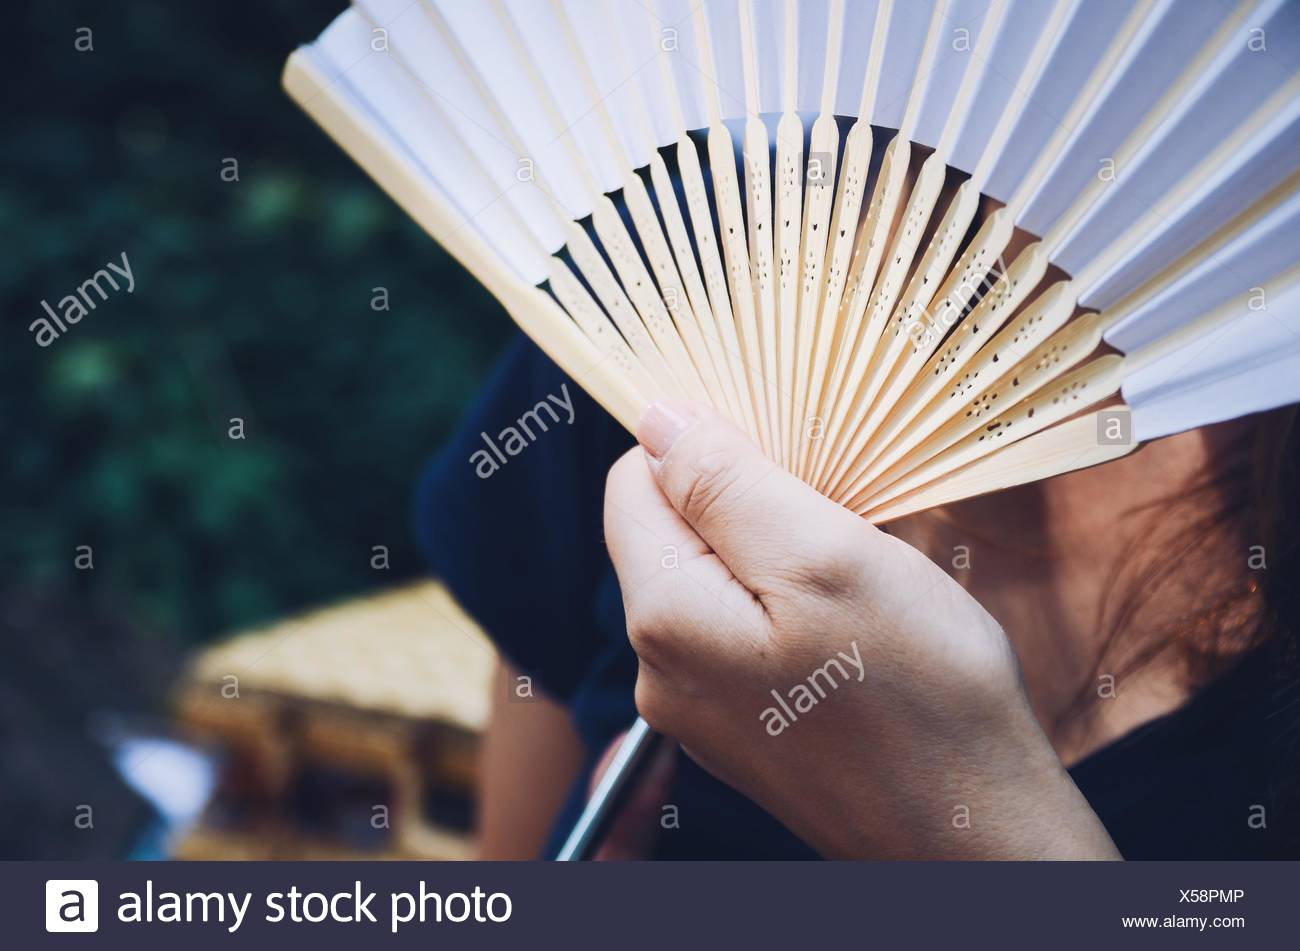 Close-Up Of Hand Holding Fan - Stock Image